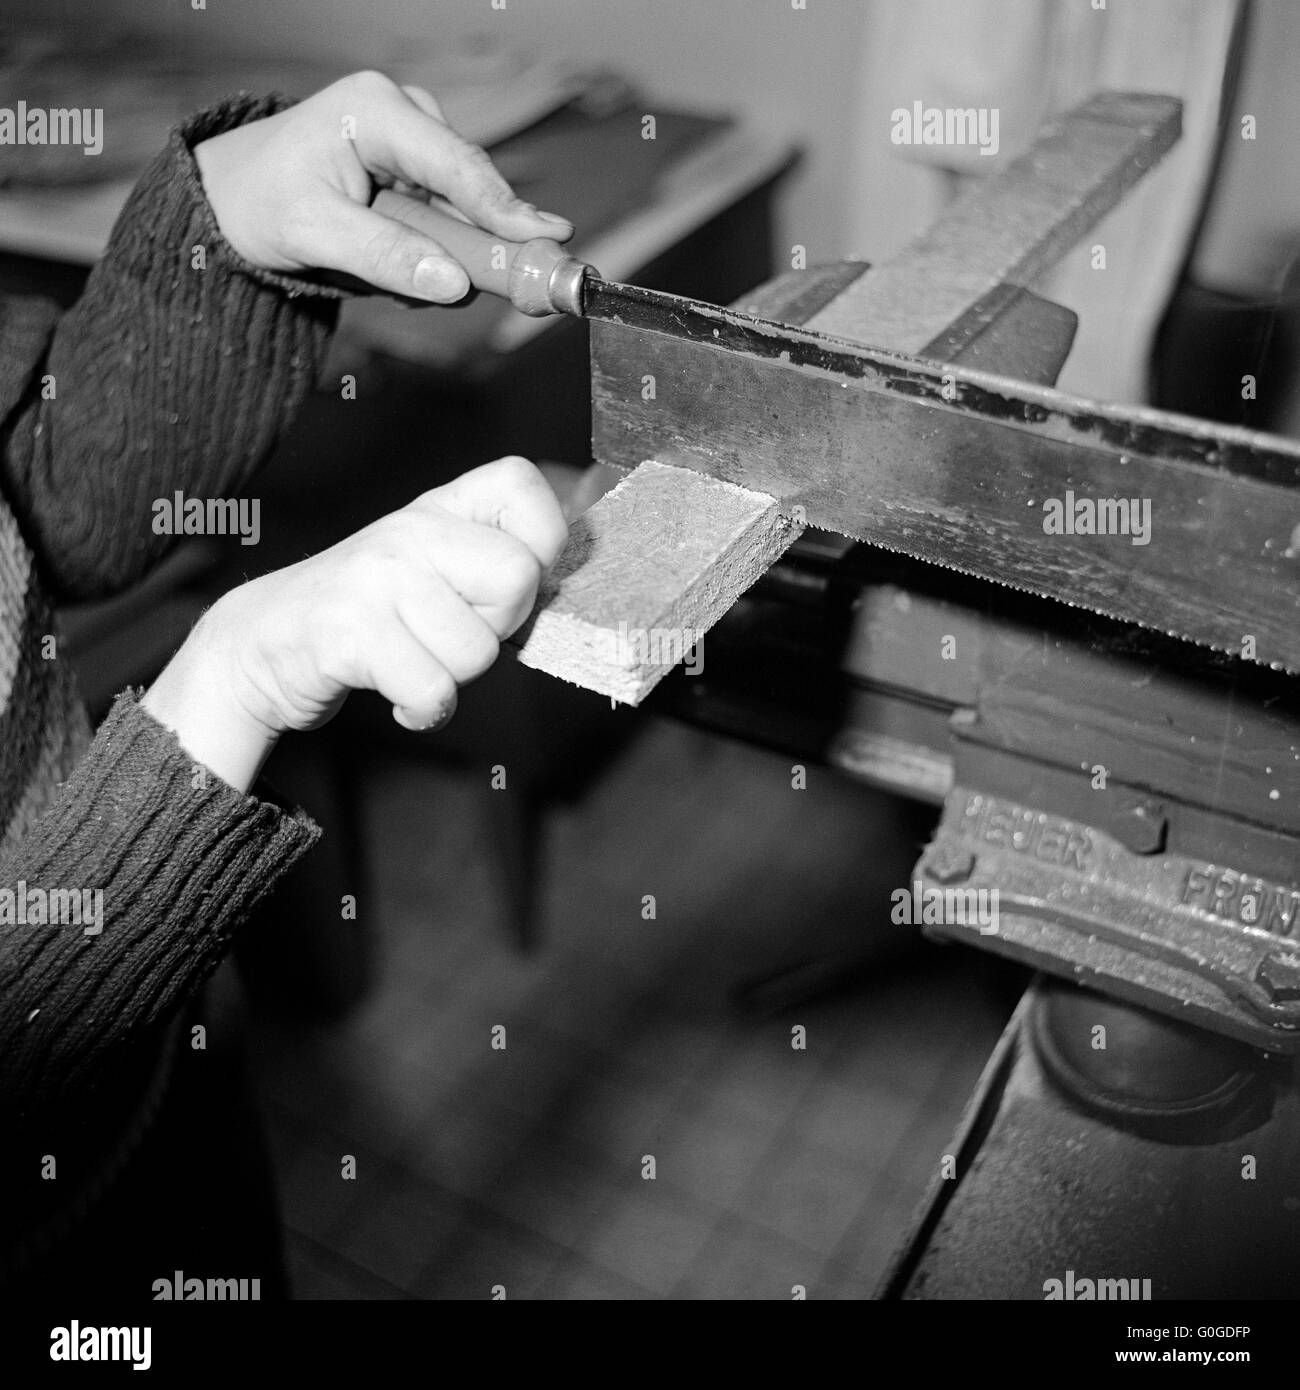 Seventies, black and white photo, people, physical handicap, school, school lessons, crafting, hands of a schoolgirl, - Stock Image